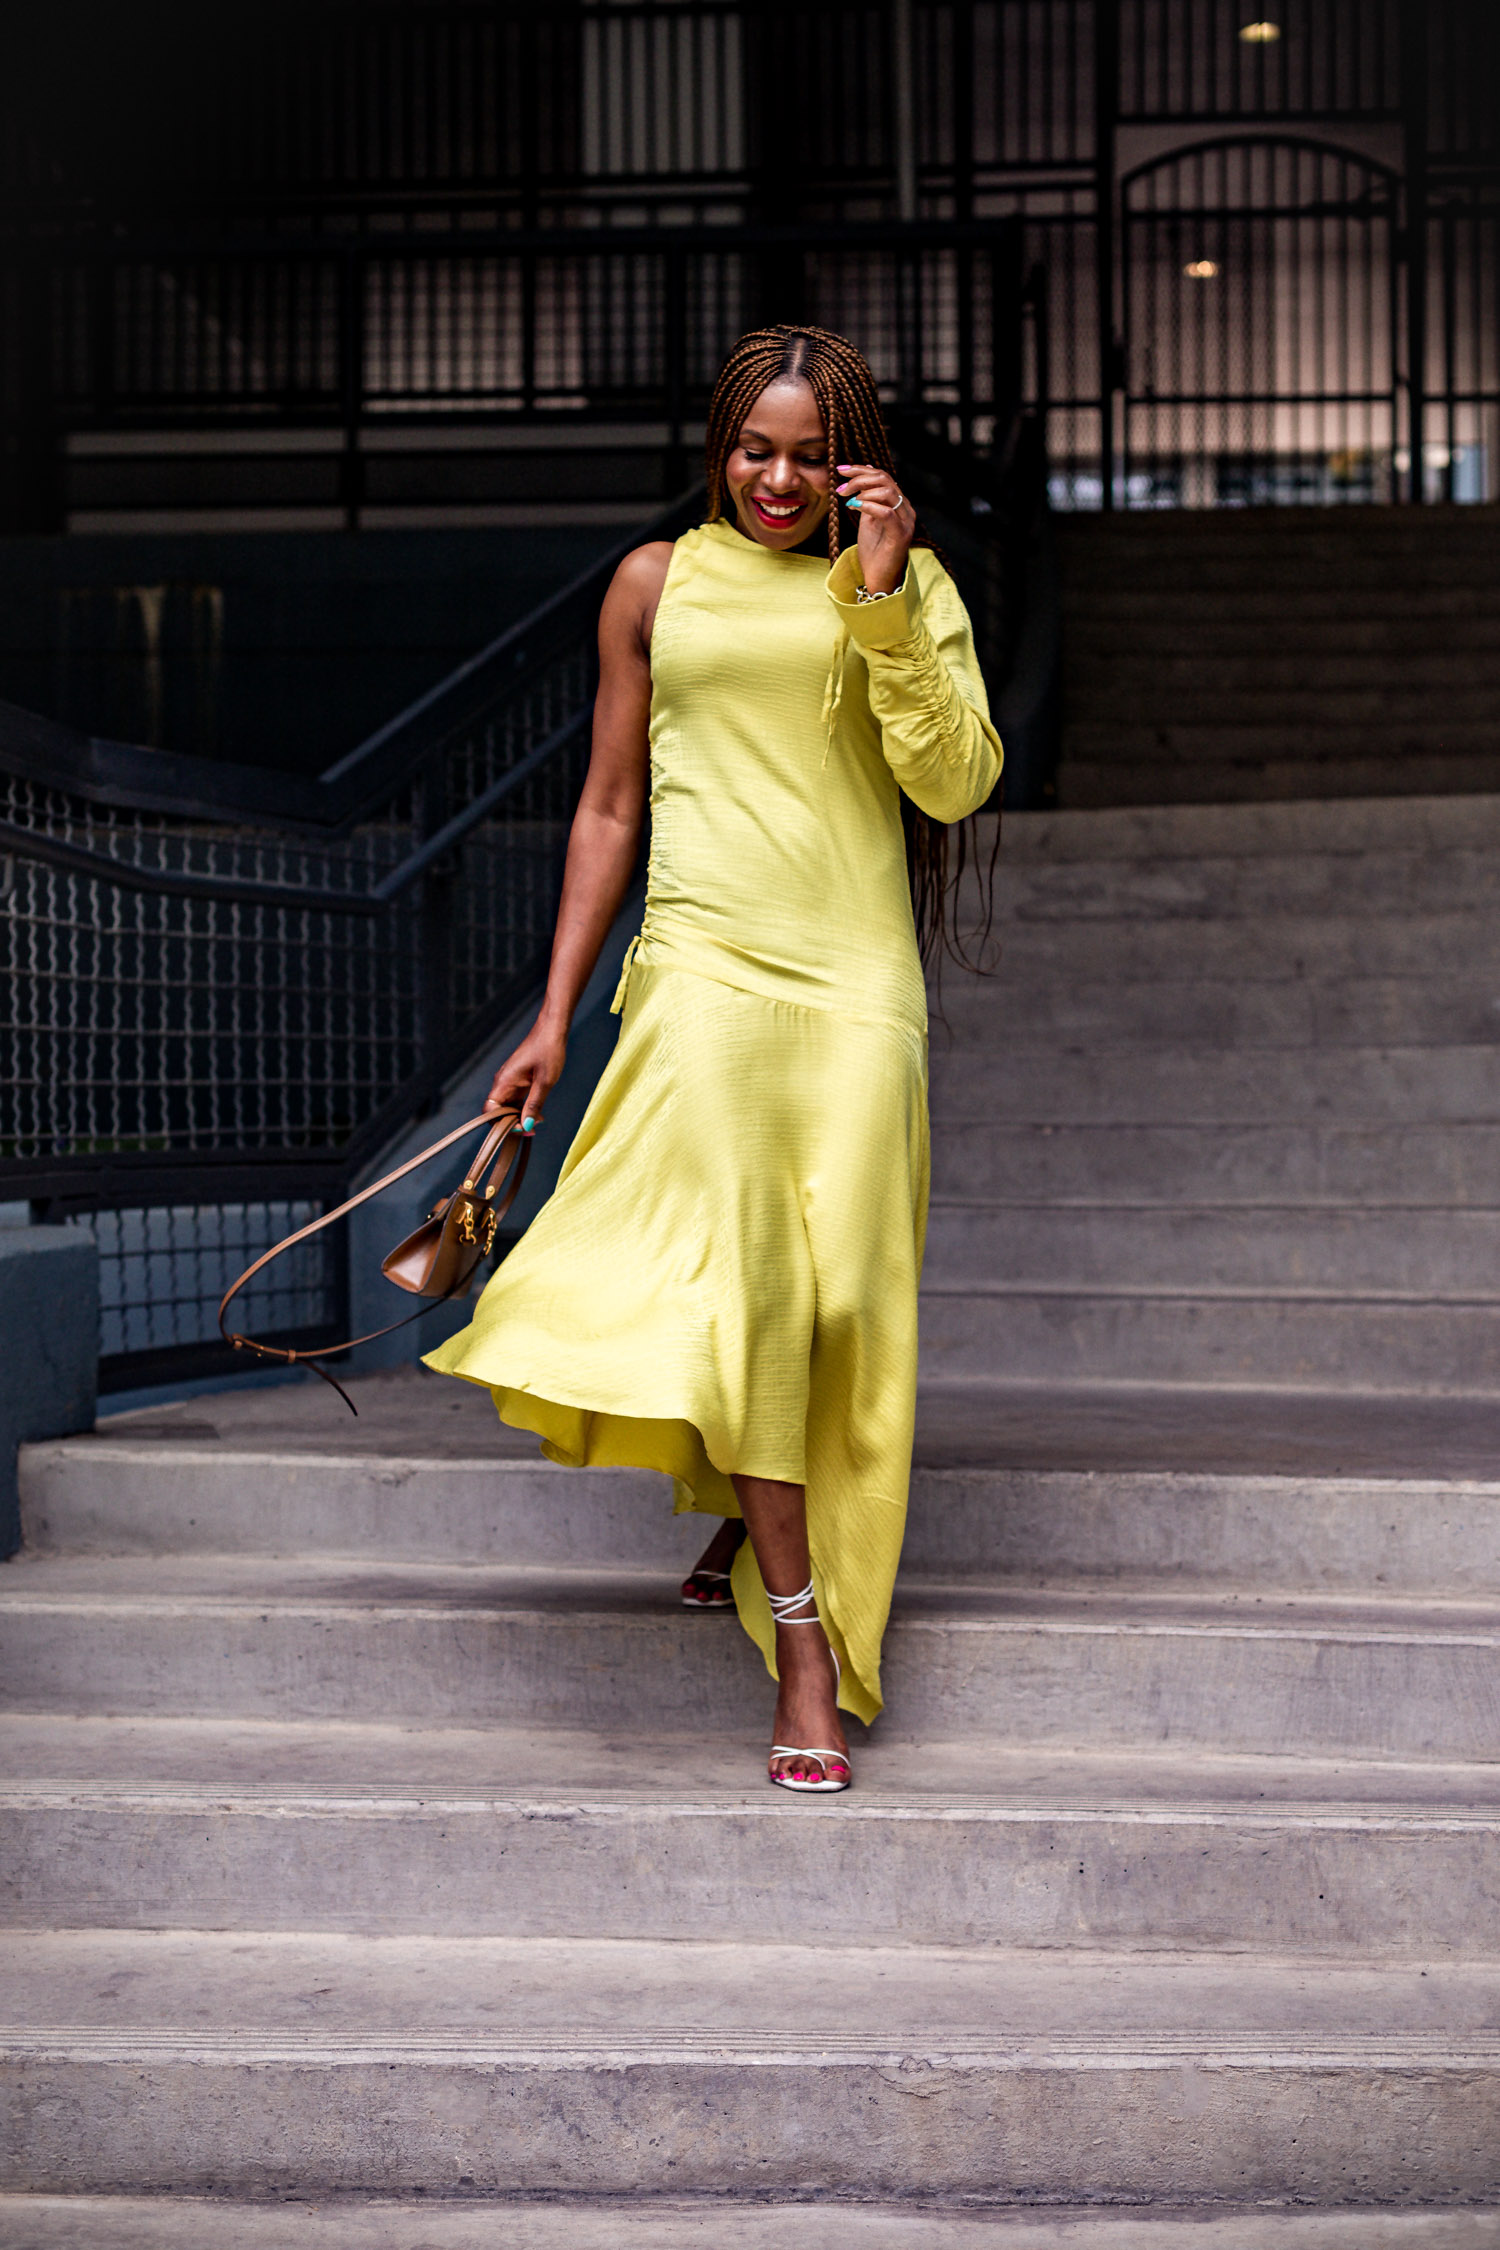 Atlanta fashion and lifestyle blogger monica awe-etuk wearing asos yellow one sleeve highlow midi dress with white sandals and tory burch bag, yellow evening dress, yellow dress, fall colors, yellow high-low dress, yellow midi dress, one sleeve dress, asos, asos dresses, rejina pyo, white sandals